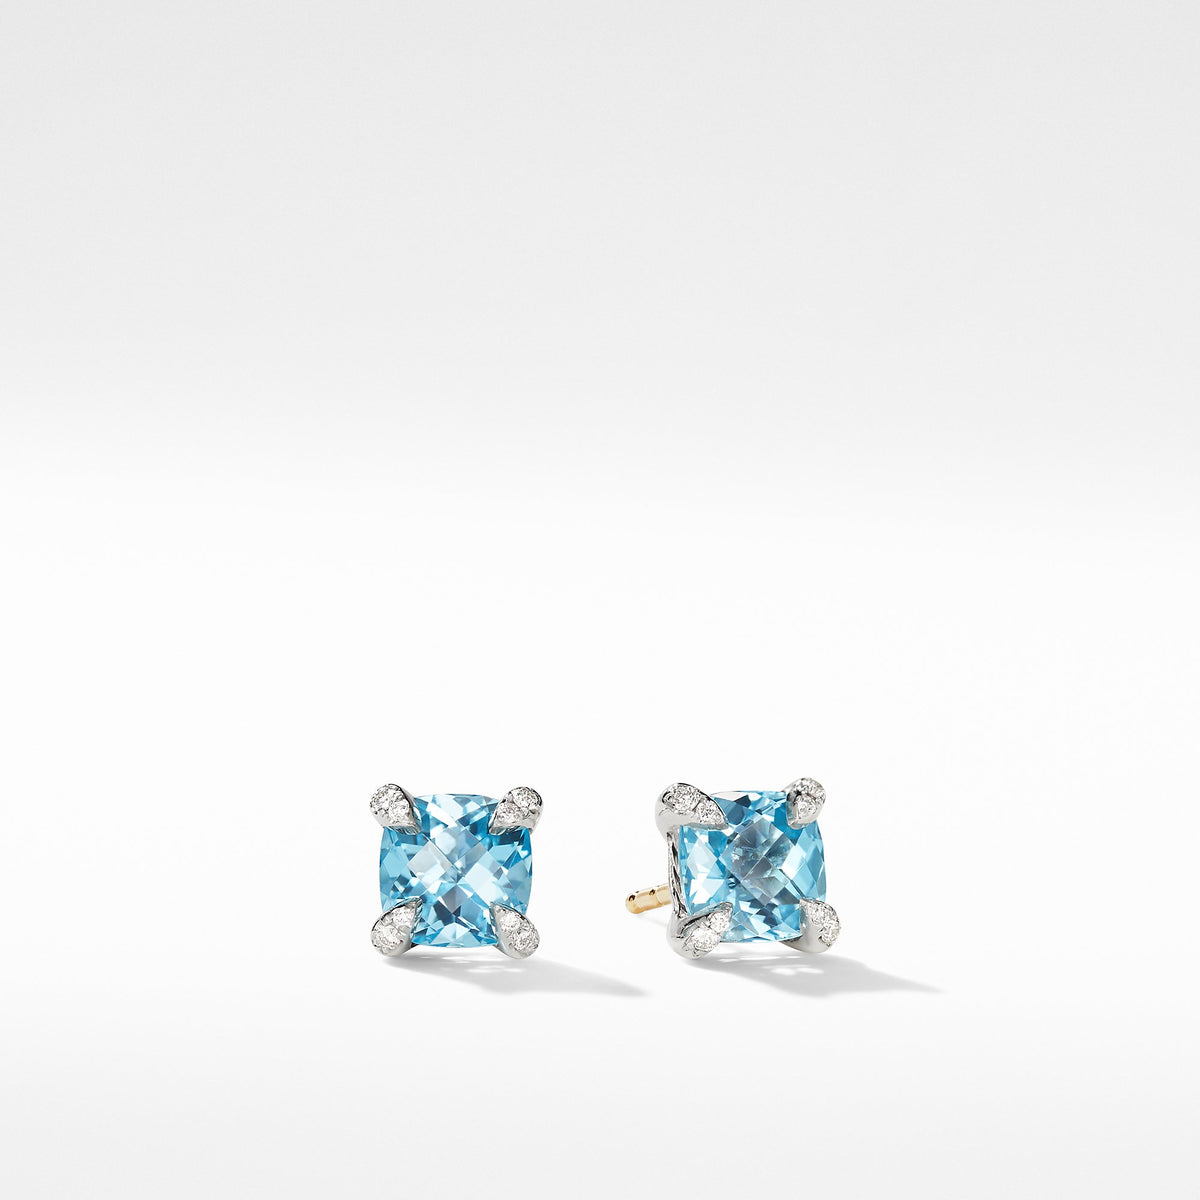 Chatelaine Stud Earrings with Blue Topaz and Diamonds